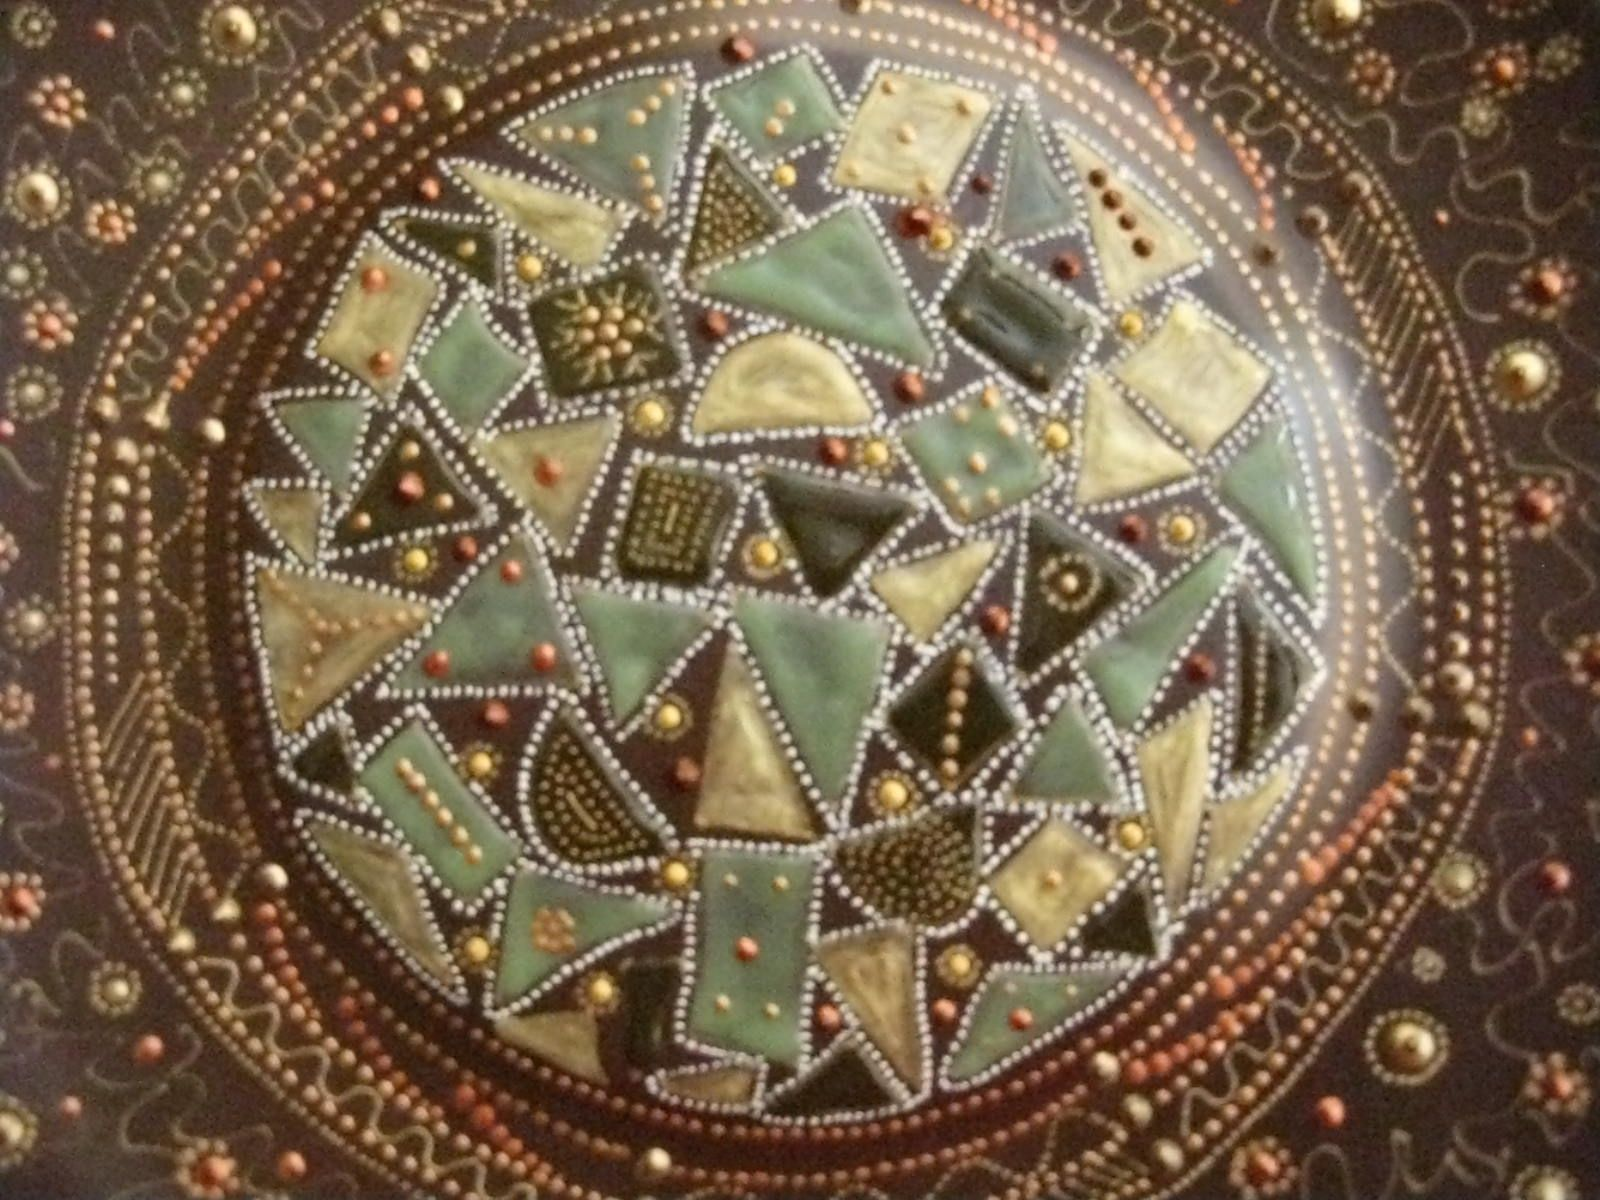 Hand Made Hand Painted Zendala Style Decorative Plate by Elena s